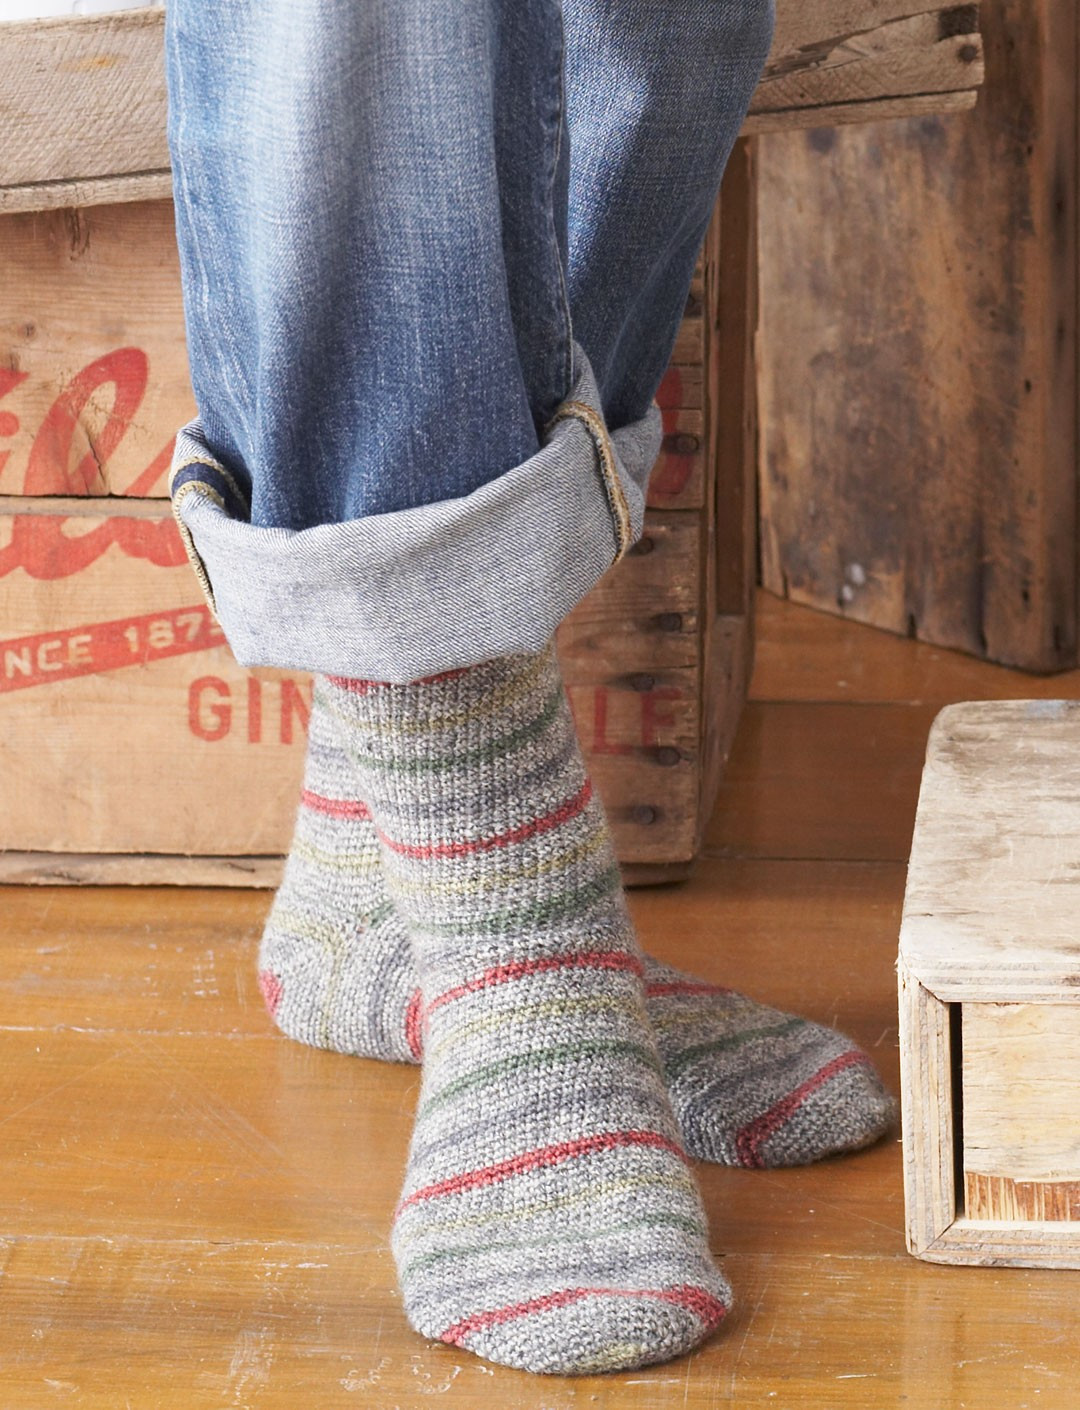 Sock Knitting Pattern Inspirational Patons sock Knitting Patterns Crochet and Knit Of Unique 41 Photos sock Knitting Pattern